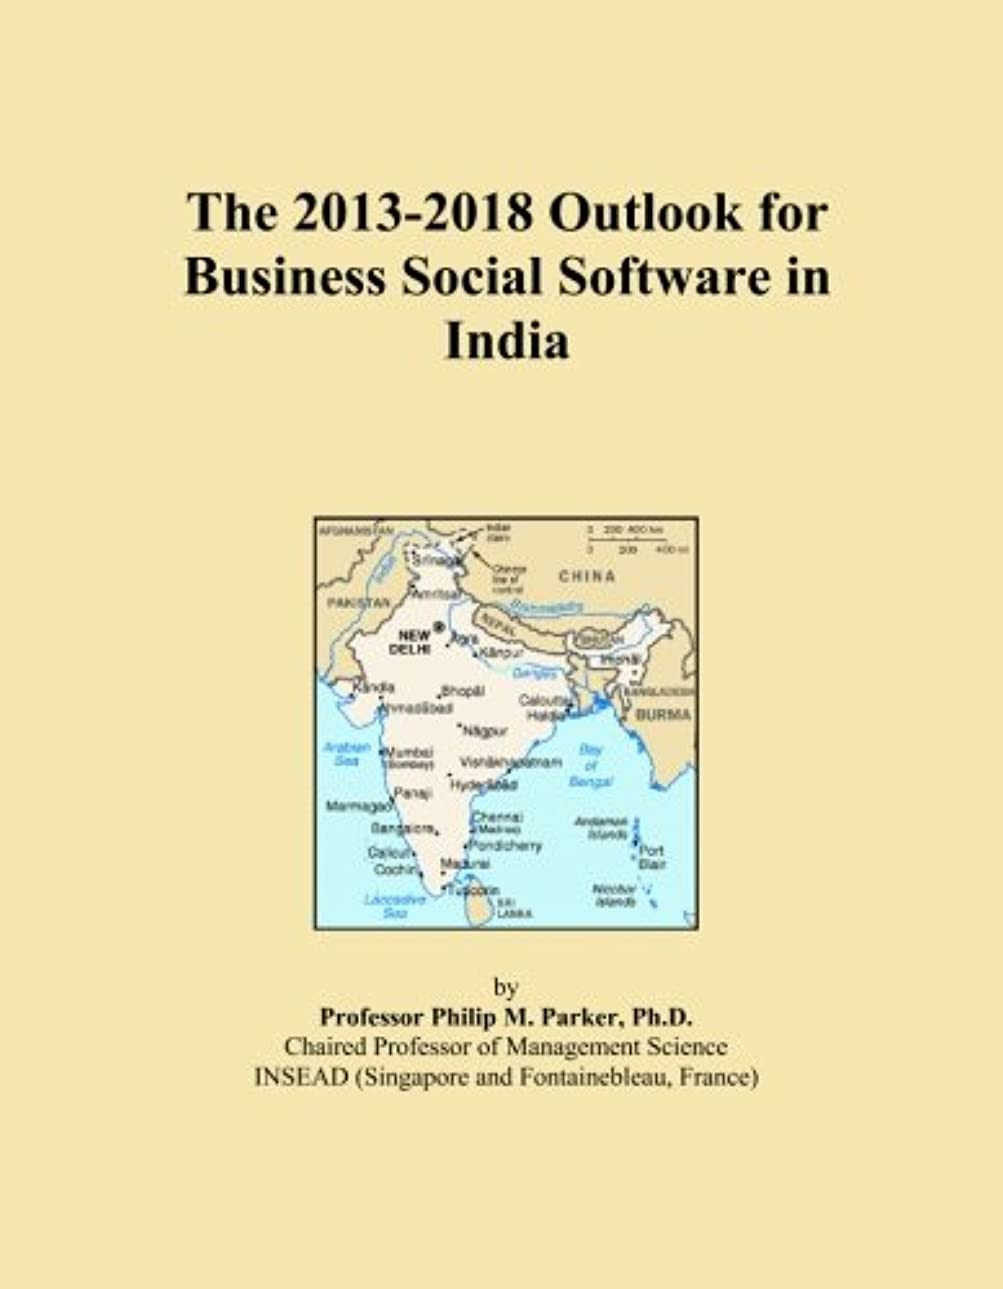 歯痛ジョガー囲むThe 2013-2018 Outlook for Business Social Software in India